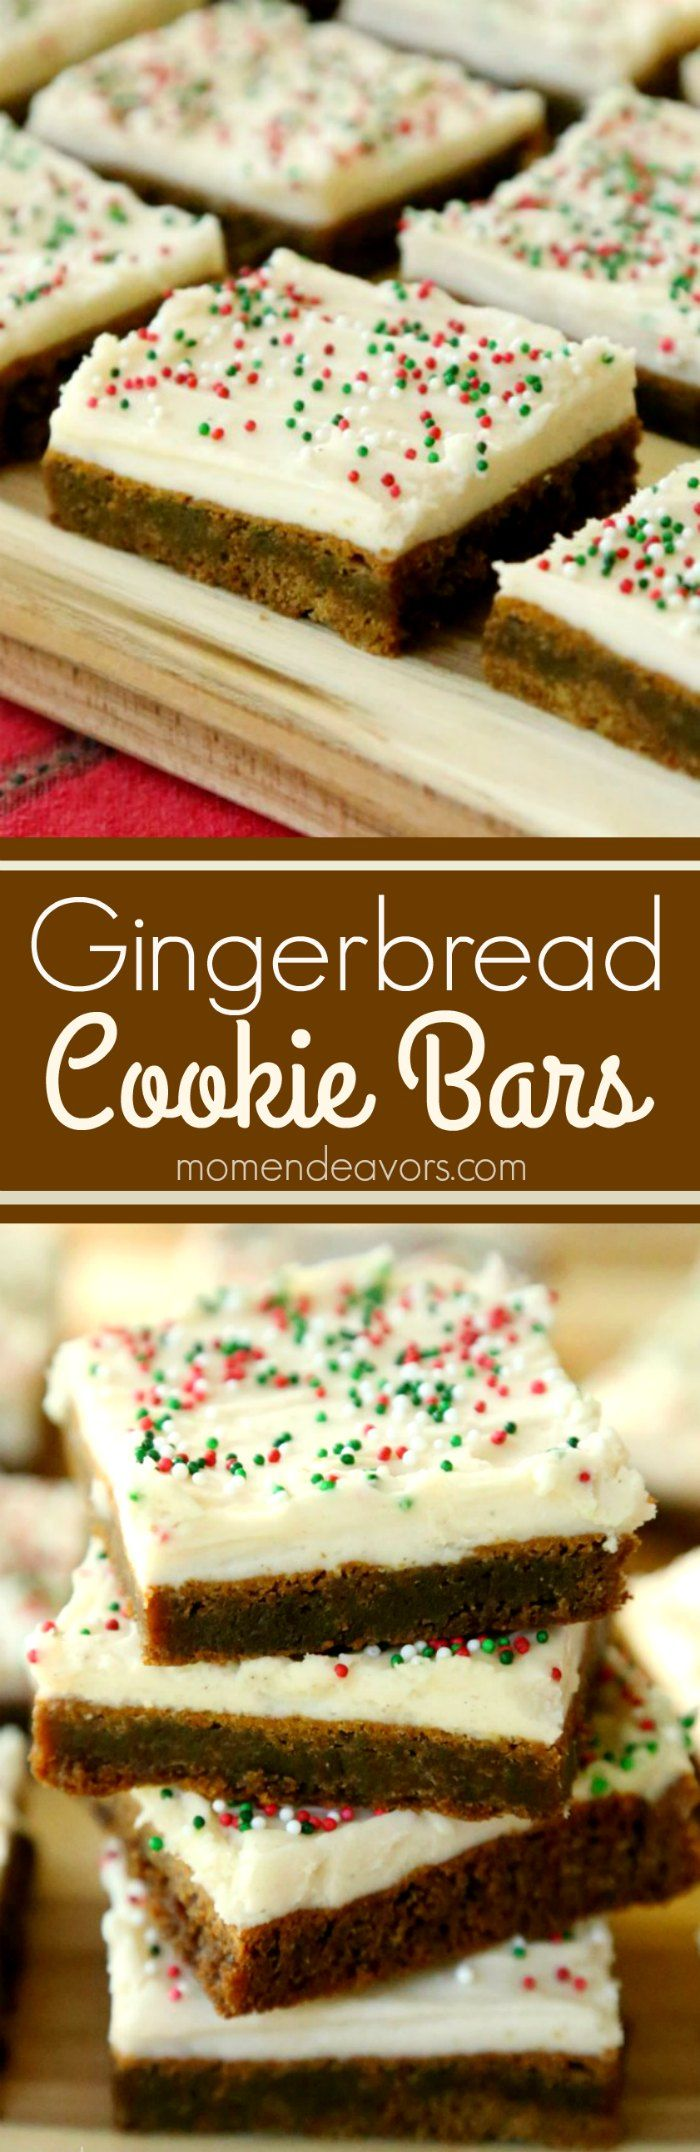 Soft+&+chewy+gingerbread+cookie+bars+with+cream+cheese+frosting!+A+delicious+Christmas+dessert!!+